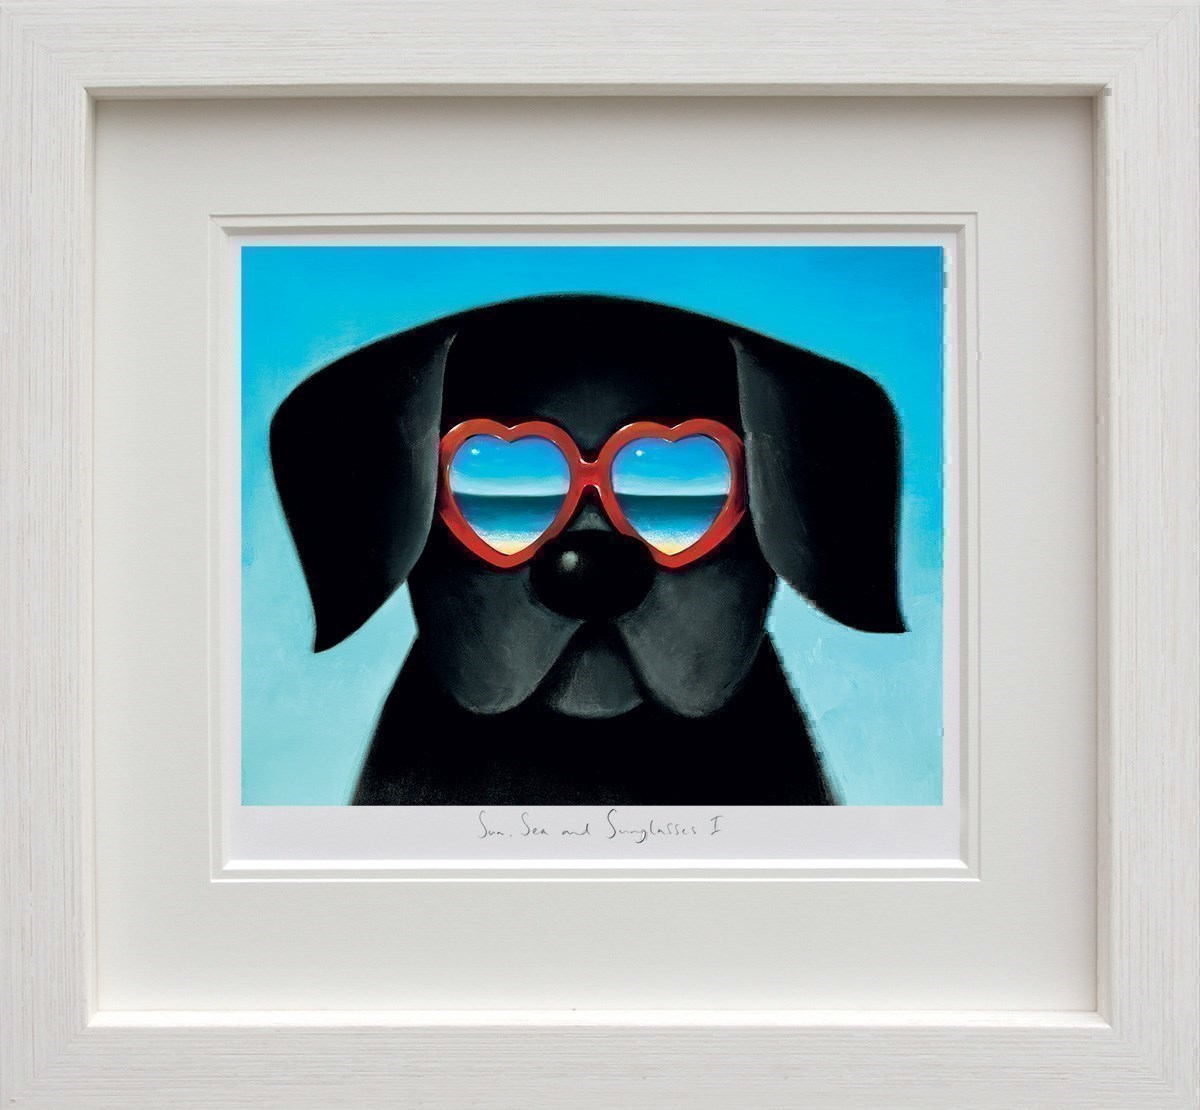 Sun Sea And Sunglasses I by Doug Hyde - Limited Edition on Paper sized 14x11 inches. Available from Whitewall Galleries